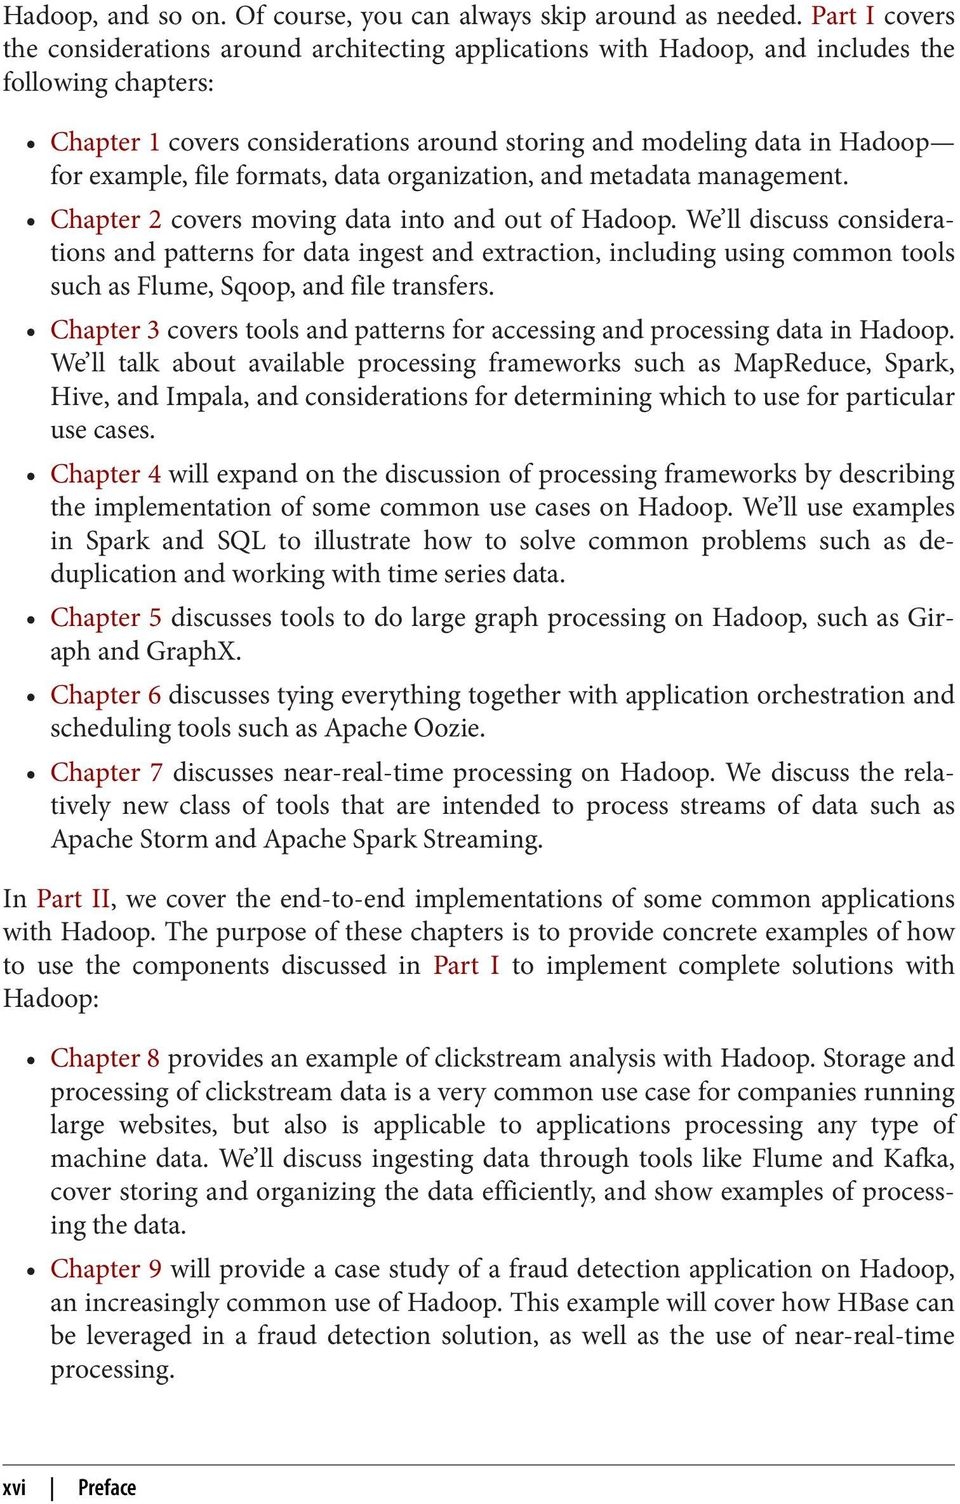 Hadoop Application Architectures  Mark Grover, Ted Malaska